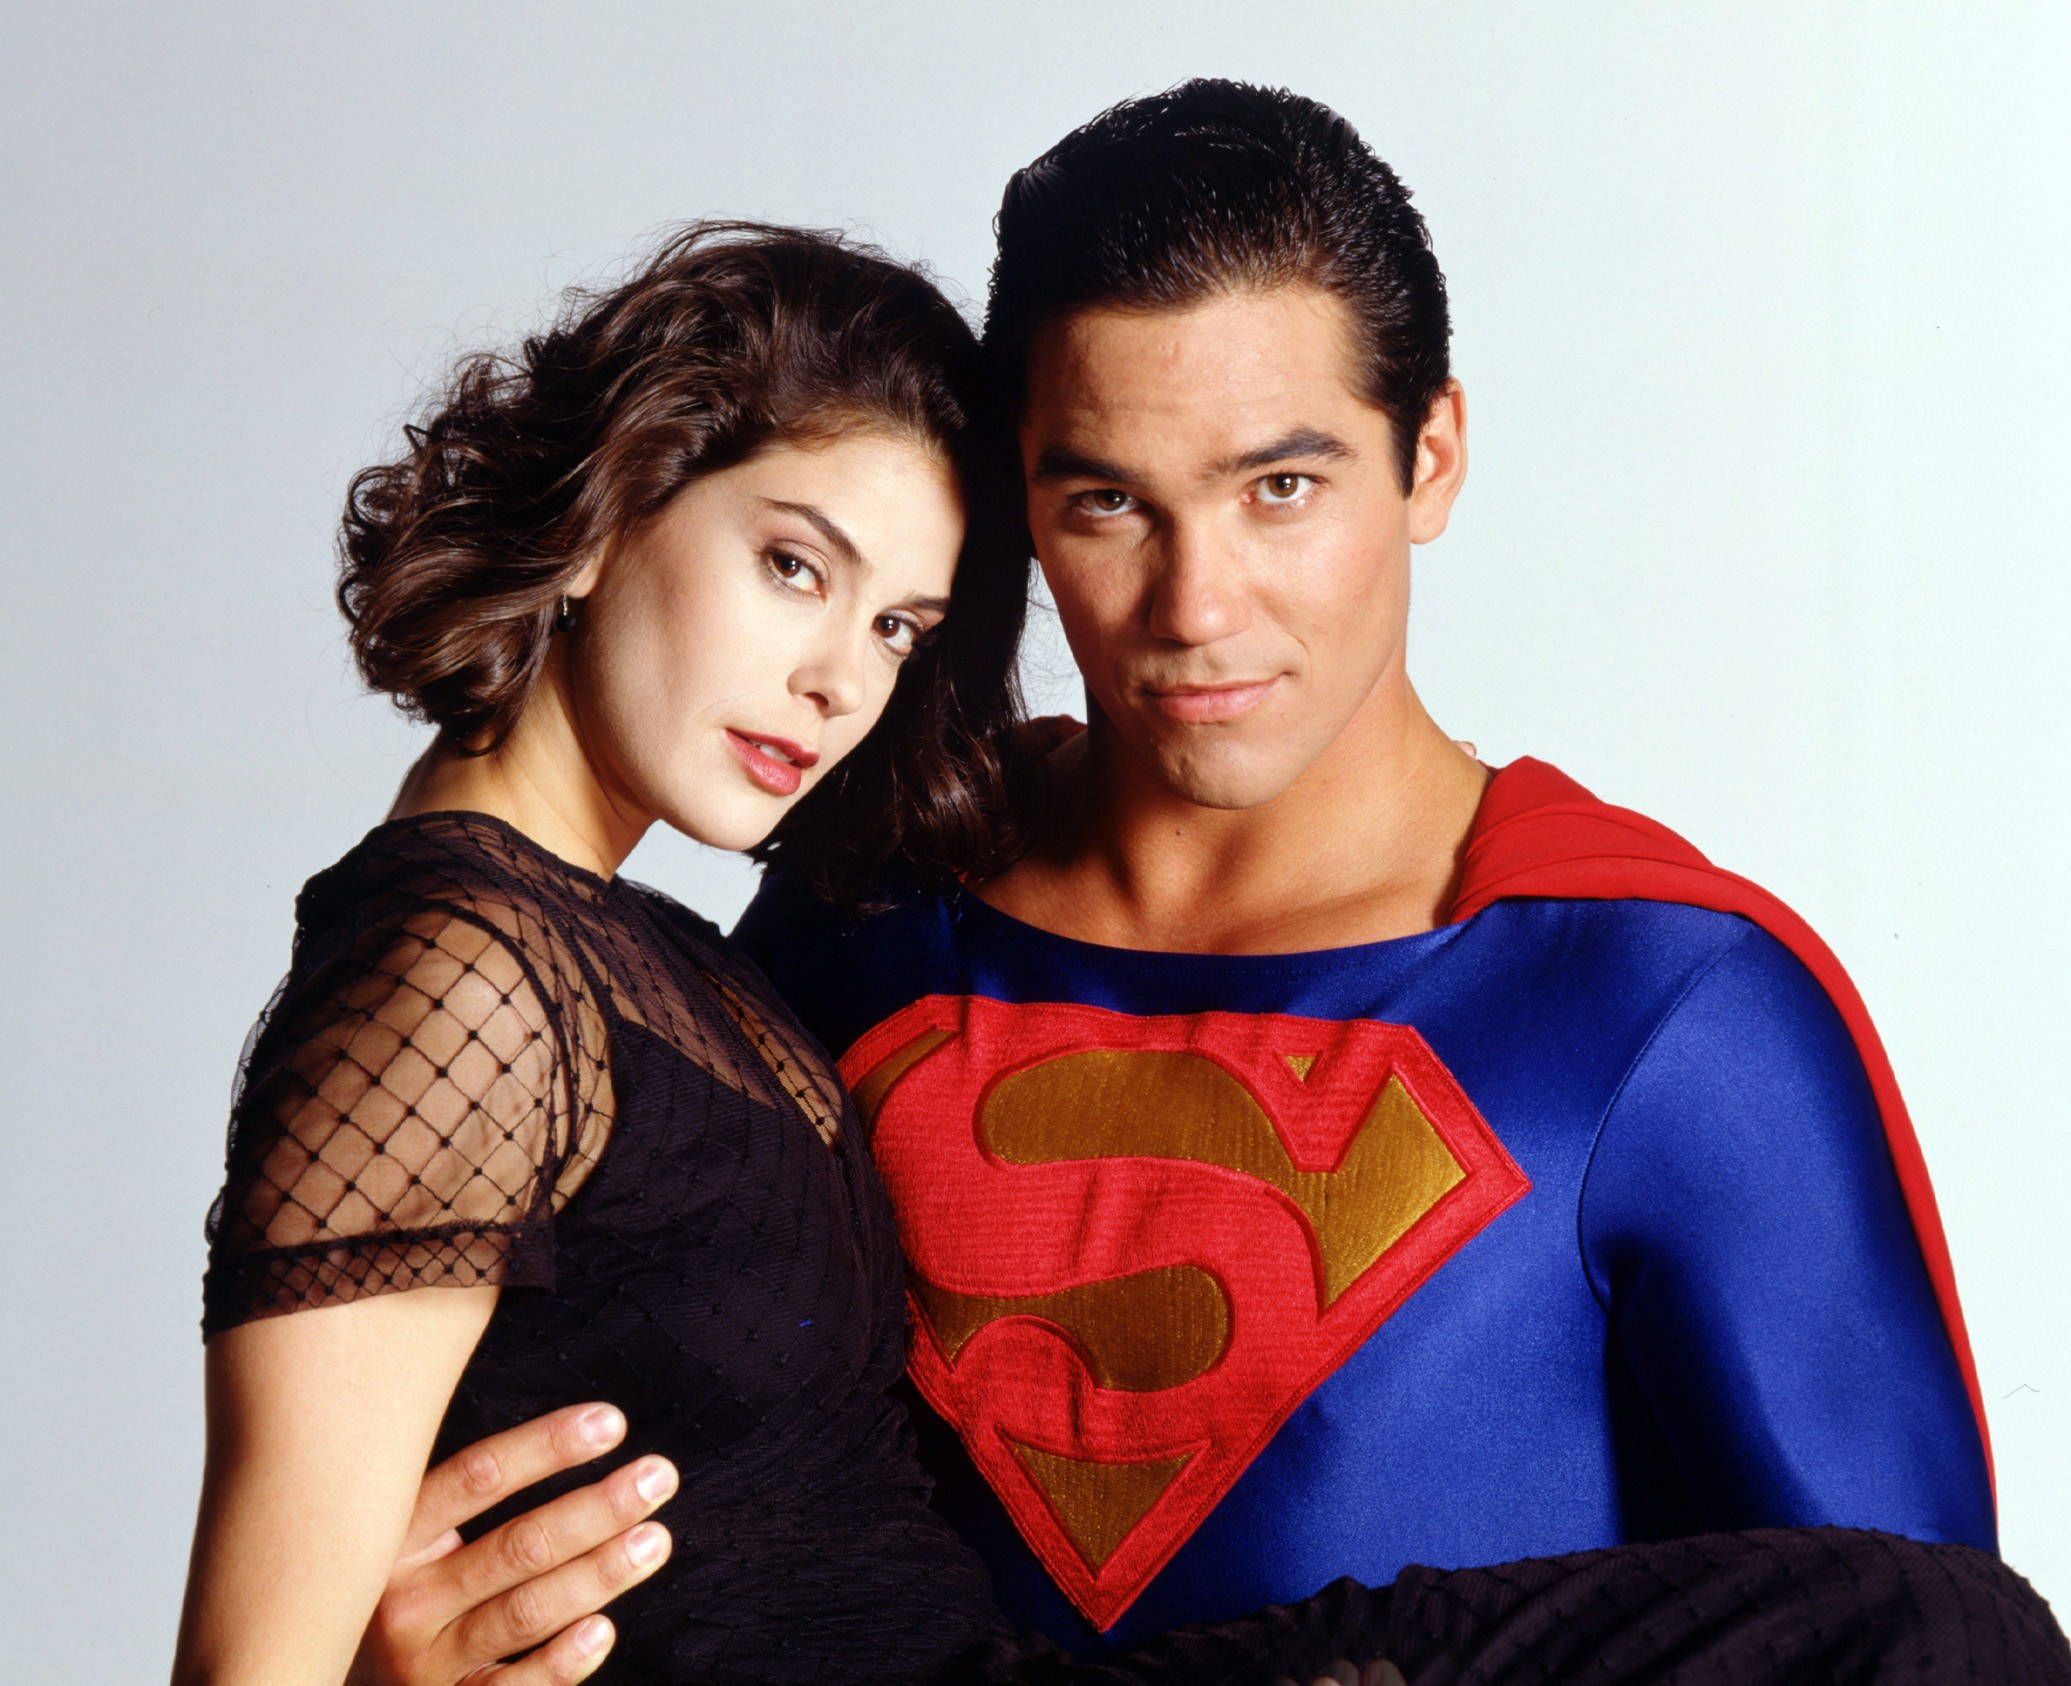 lois and clark Remember Dean Cain From 'Lois & Clark: The New Adventures of Superman'? This Is What He Looks Like Now!